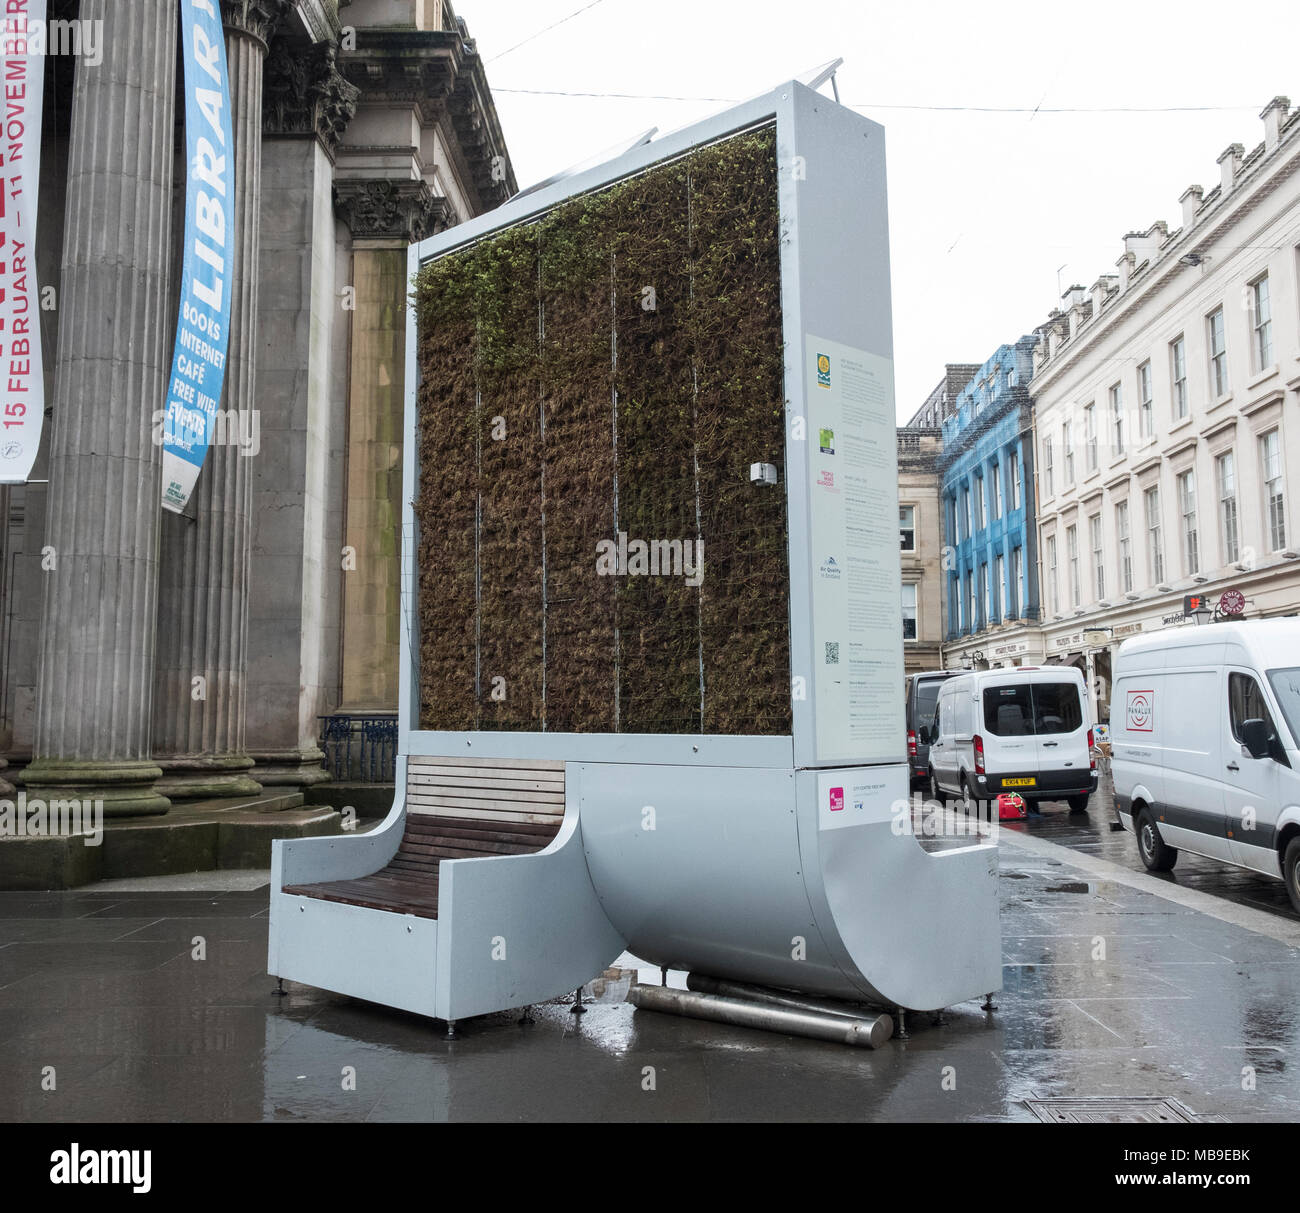 Large outdoor air purifying machine on street in central Glasgow , Scotland, United Kingdom - Stock Image